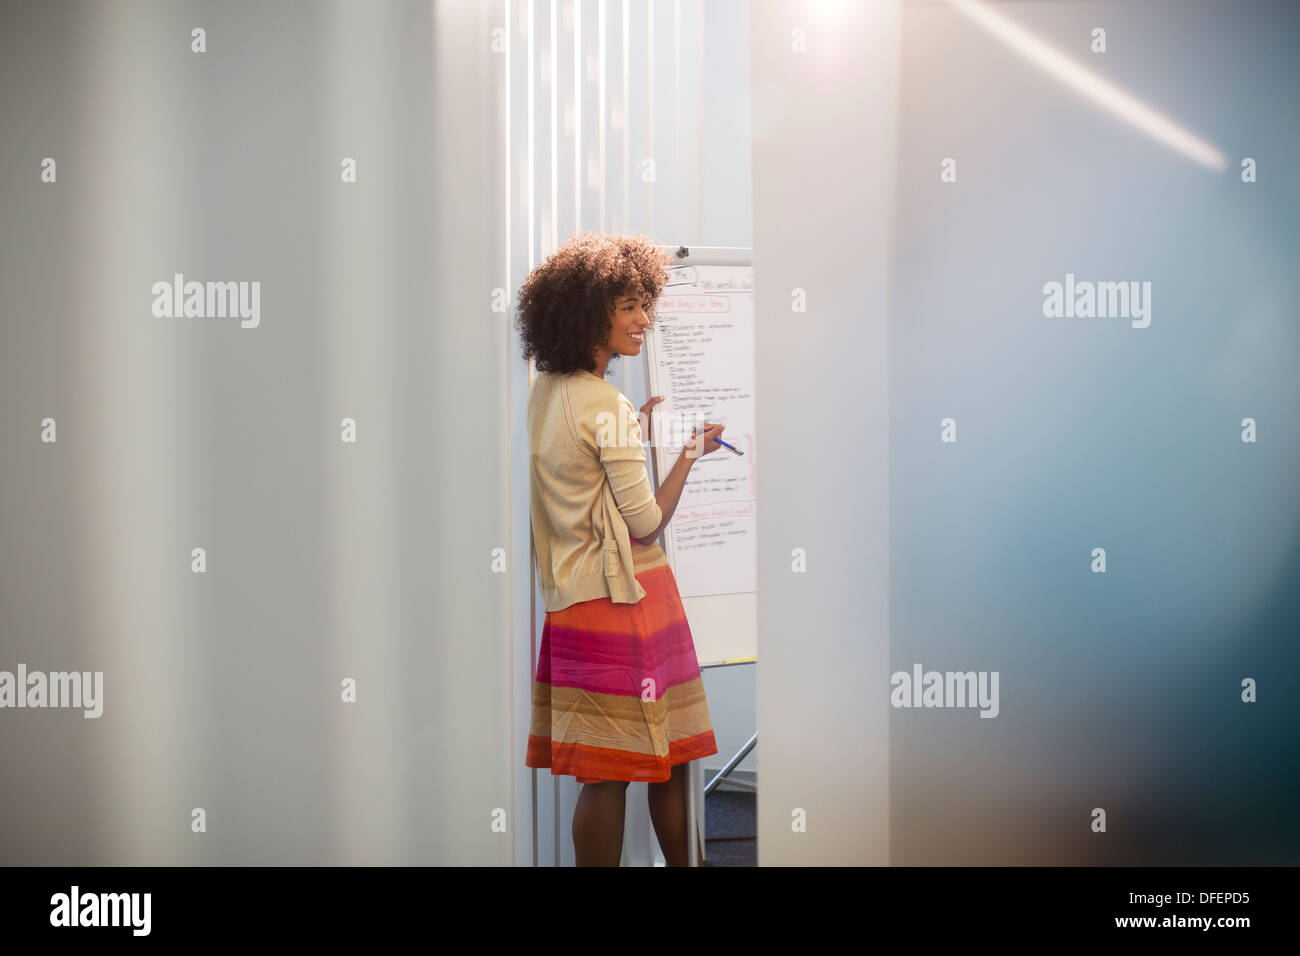 Businesswoman at whiteboard in conference room - Stock Image